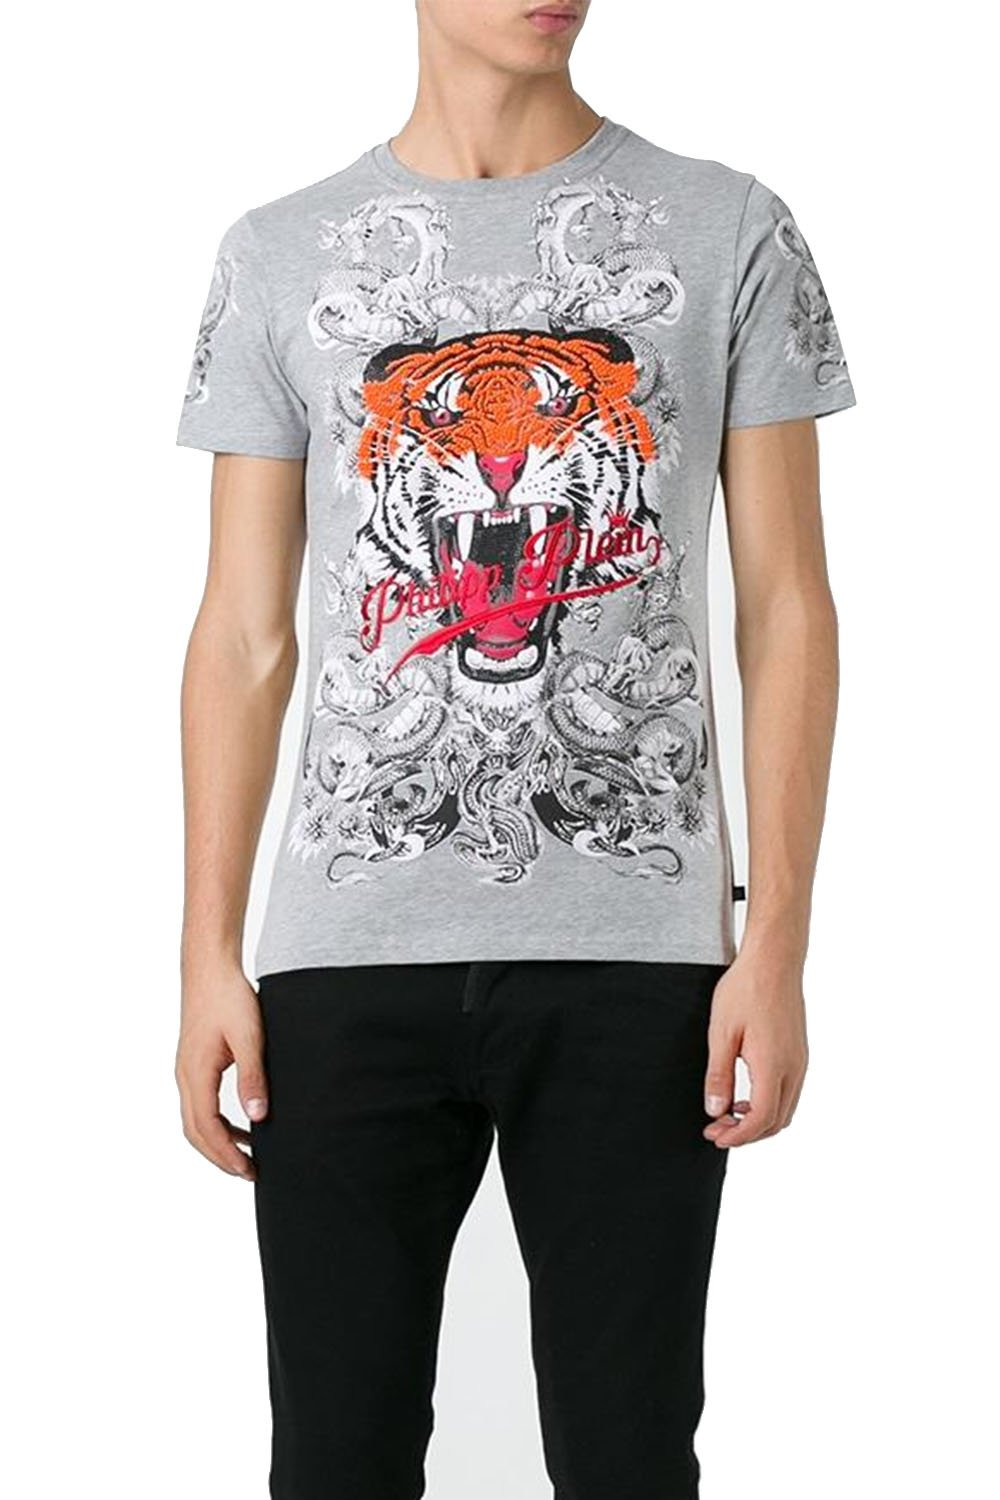 PHILIPP PLEIN - Men's T-shirt PHILIPP TIGER - gray, M by Philipp Plein